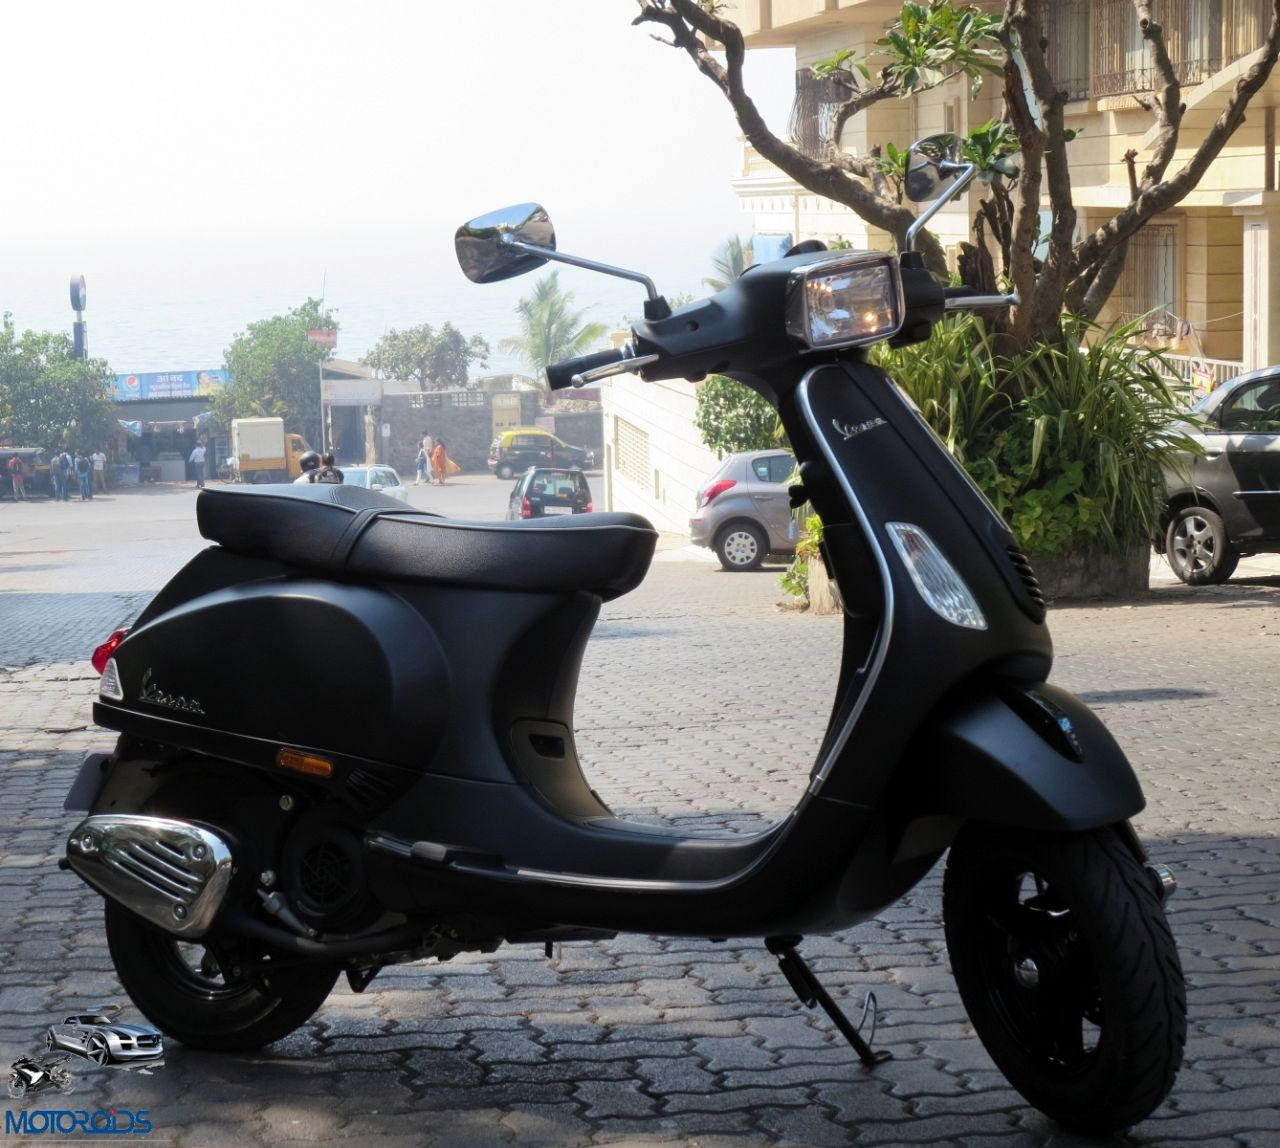 Piaggio Vespa S First Ride Review: Specifications, Images, Prices and